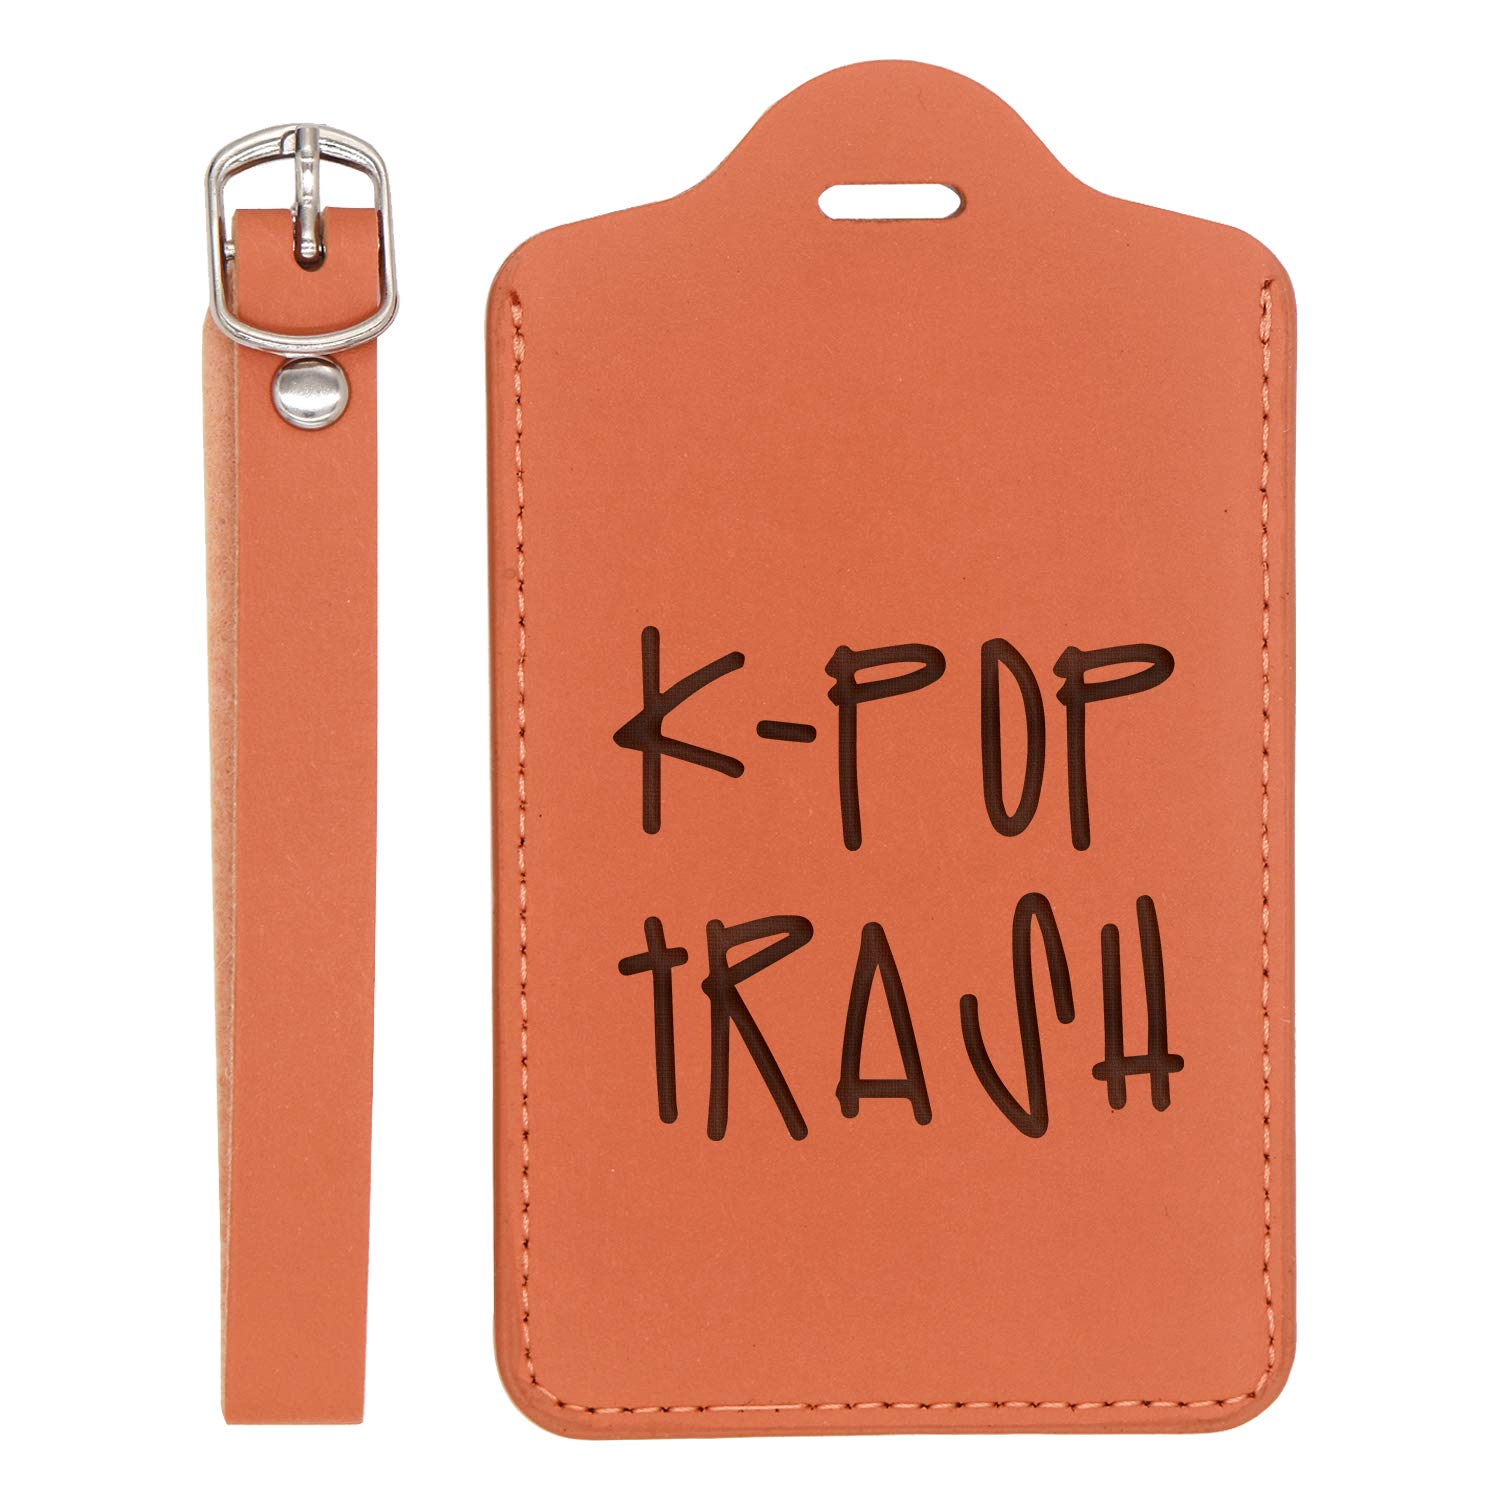 Hallyu Kpop Kpop Trash Engraved Synthetic Pu Leather Luggage Tag - United States Standard London Tan - Set Of 2 For Any Type Of Luggage Handcrafted By Mastercraftsmen